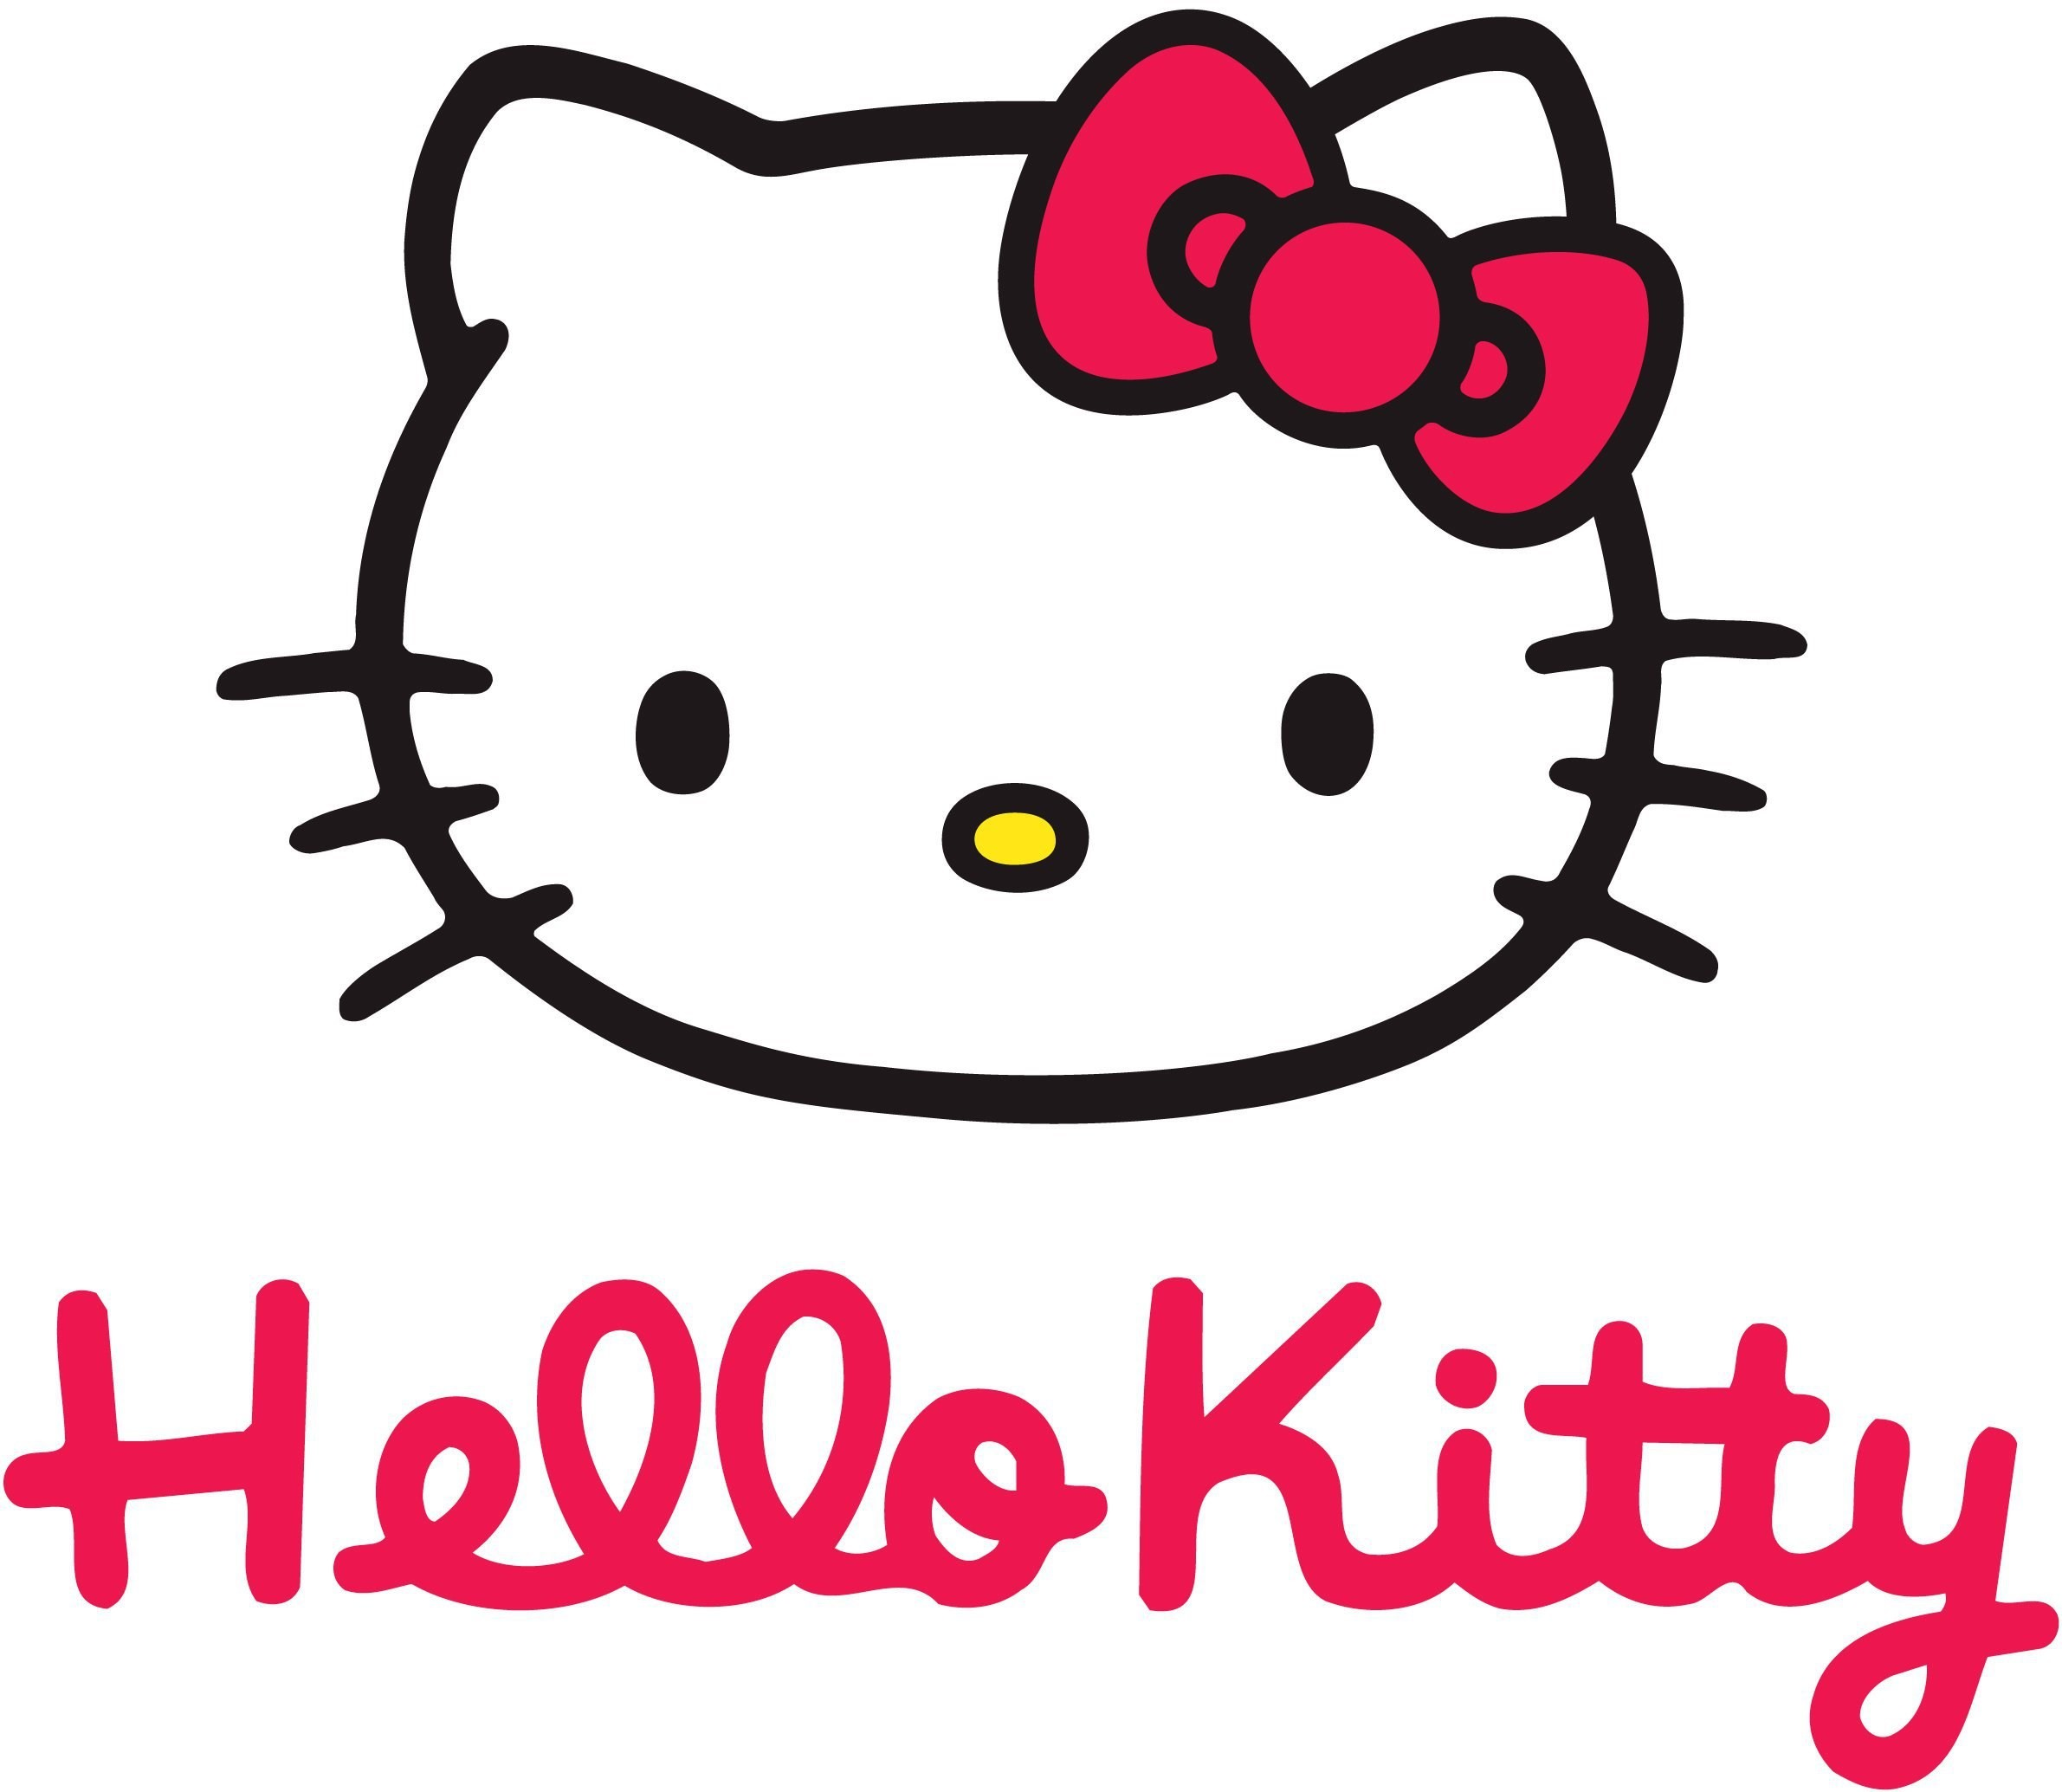 Hello Kitty Wallpaper – Original Picture and Name for Many Purposes – HD  Wallpapers for Free